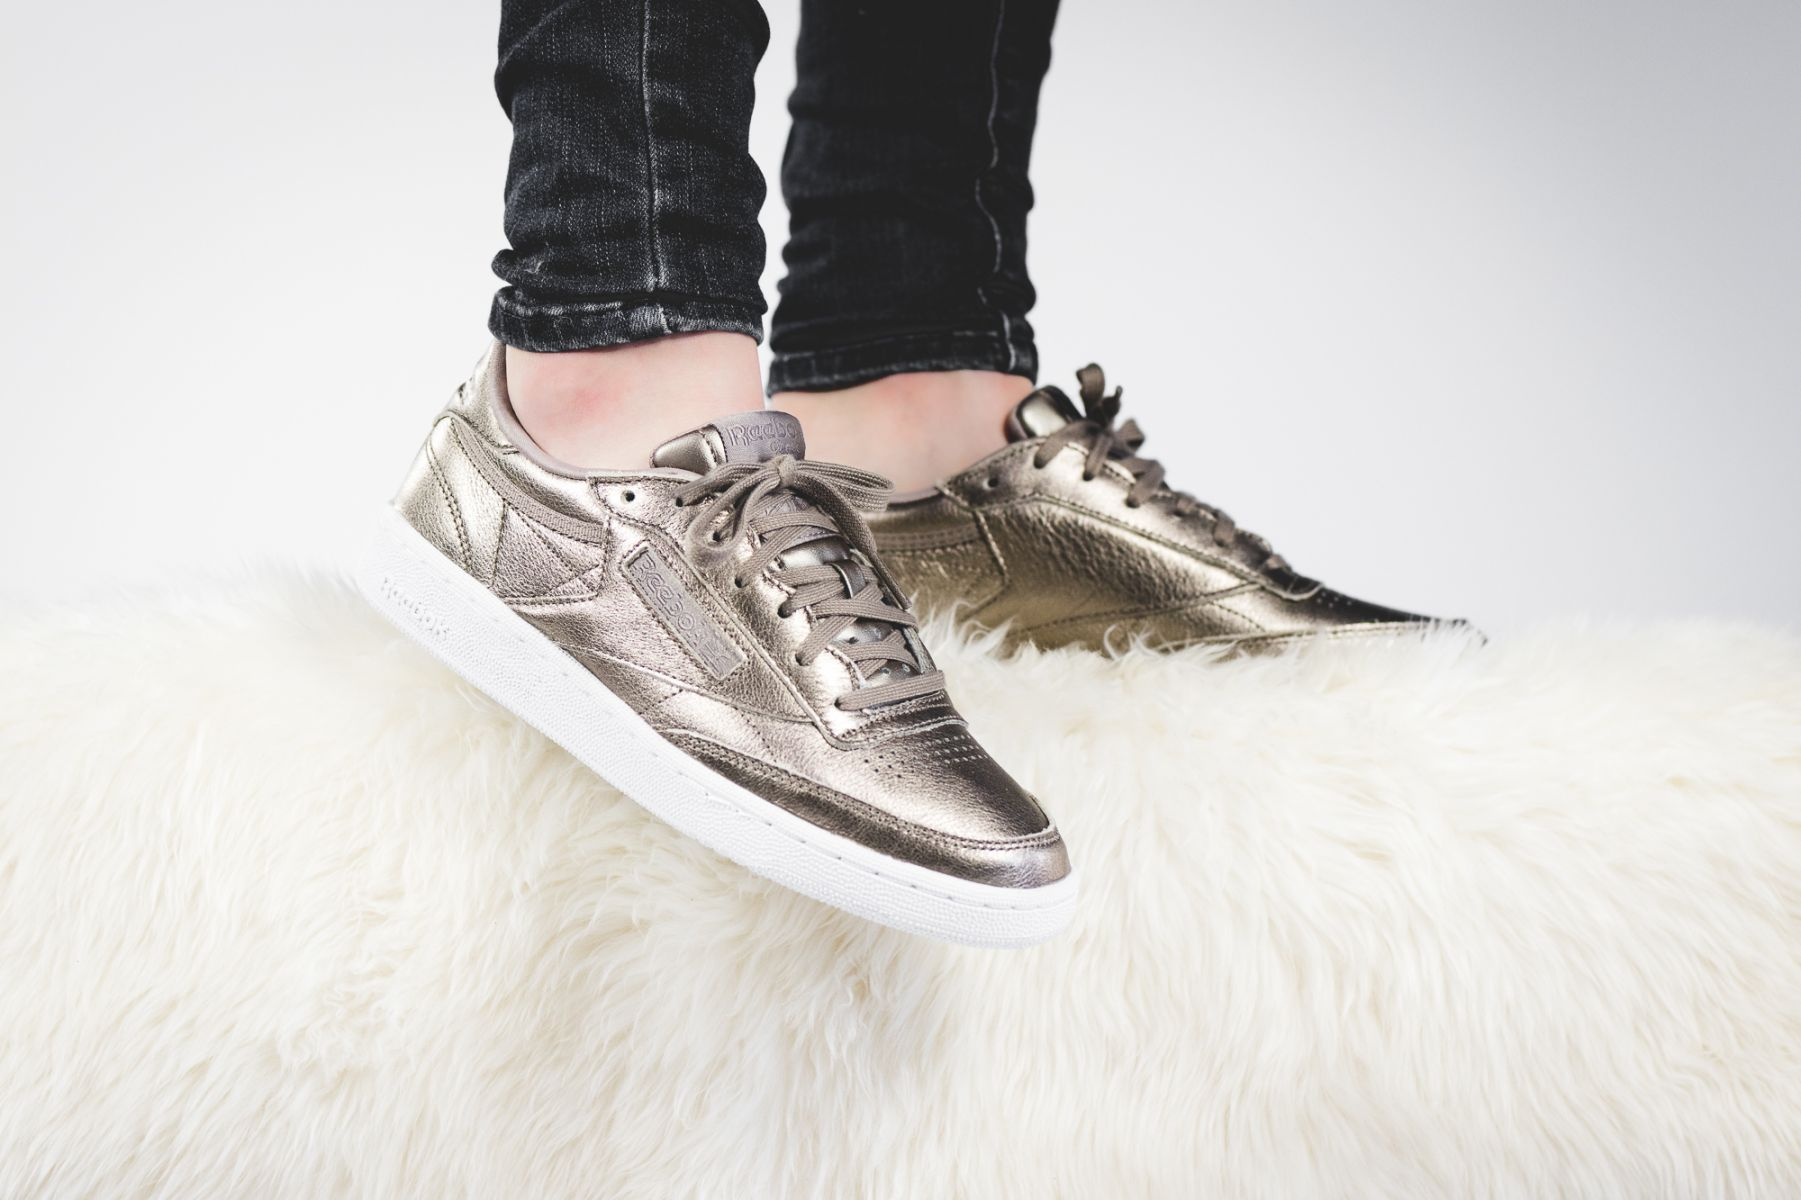 55edfb497a5 Reebok Club C 85 Melted Metal (gold) - BS7901